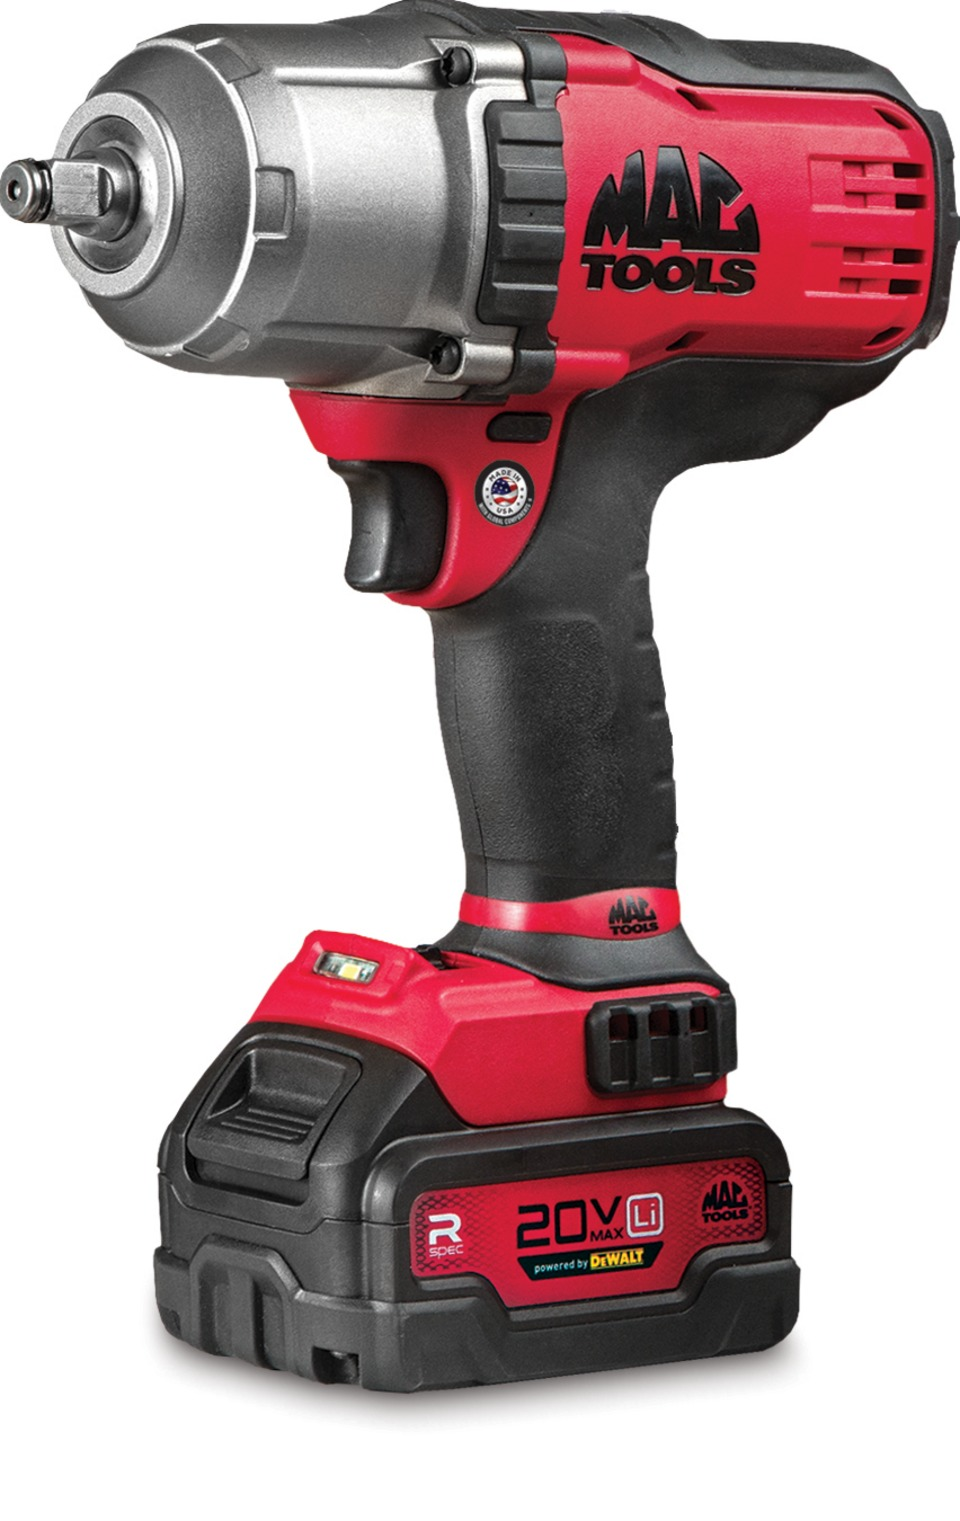 Bwp151 Is A Heavy Duty High Torque Tool Suitable For The Automotive Professional This Impact Wrench Has Capability Of 1 200 Ft Lbs